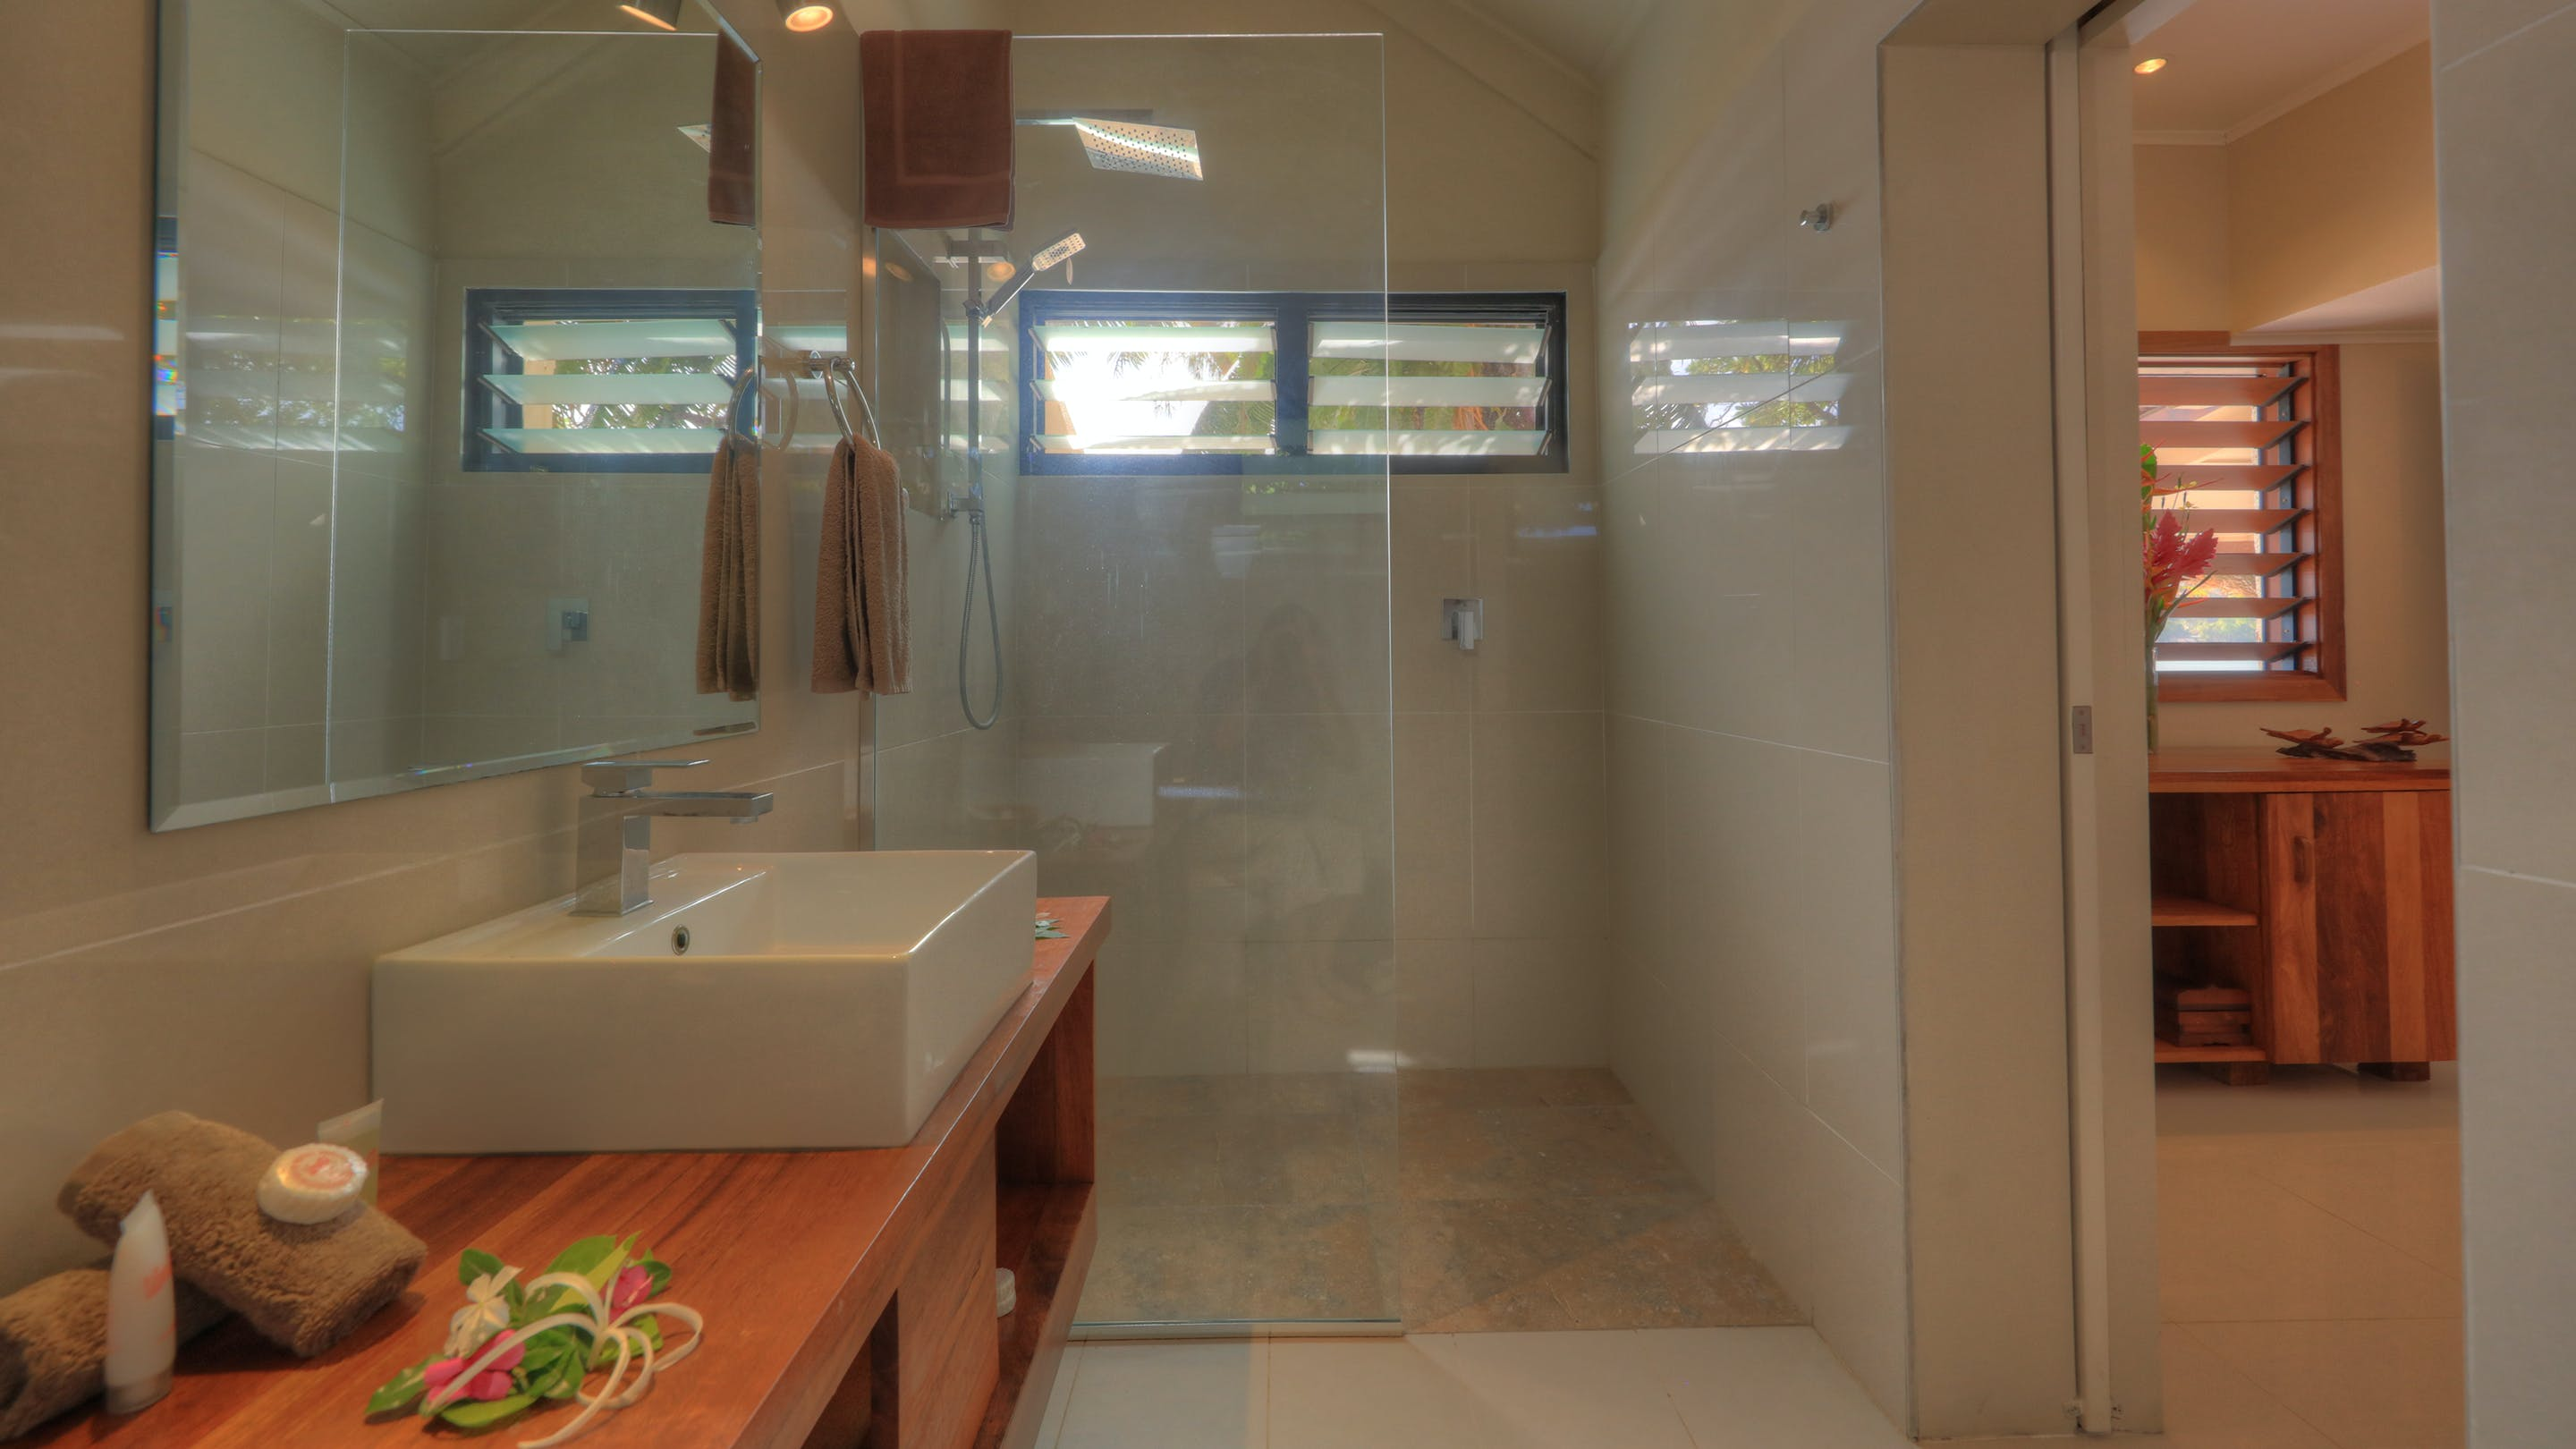 #Vanuatuaccommodation #private ensuite #erakorislandresort #tropicalislandholiday #Vanuatuaccommodation